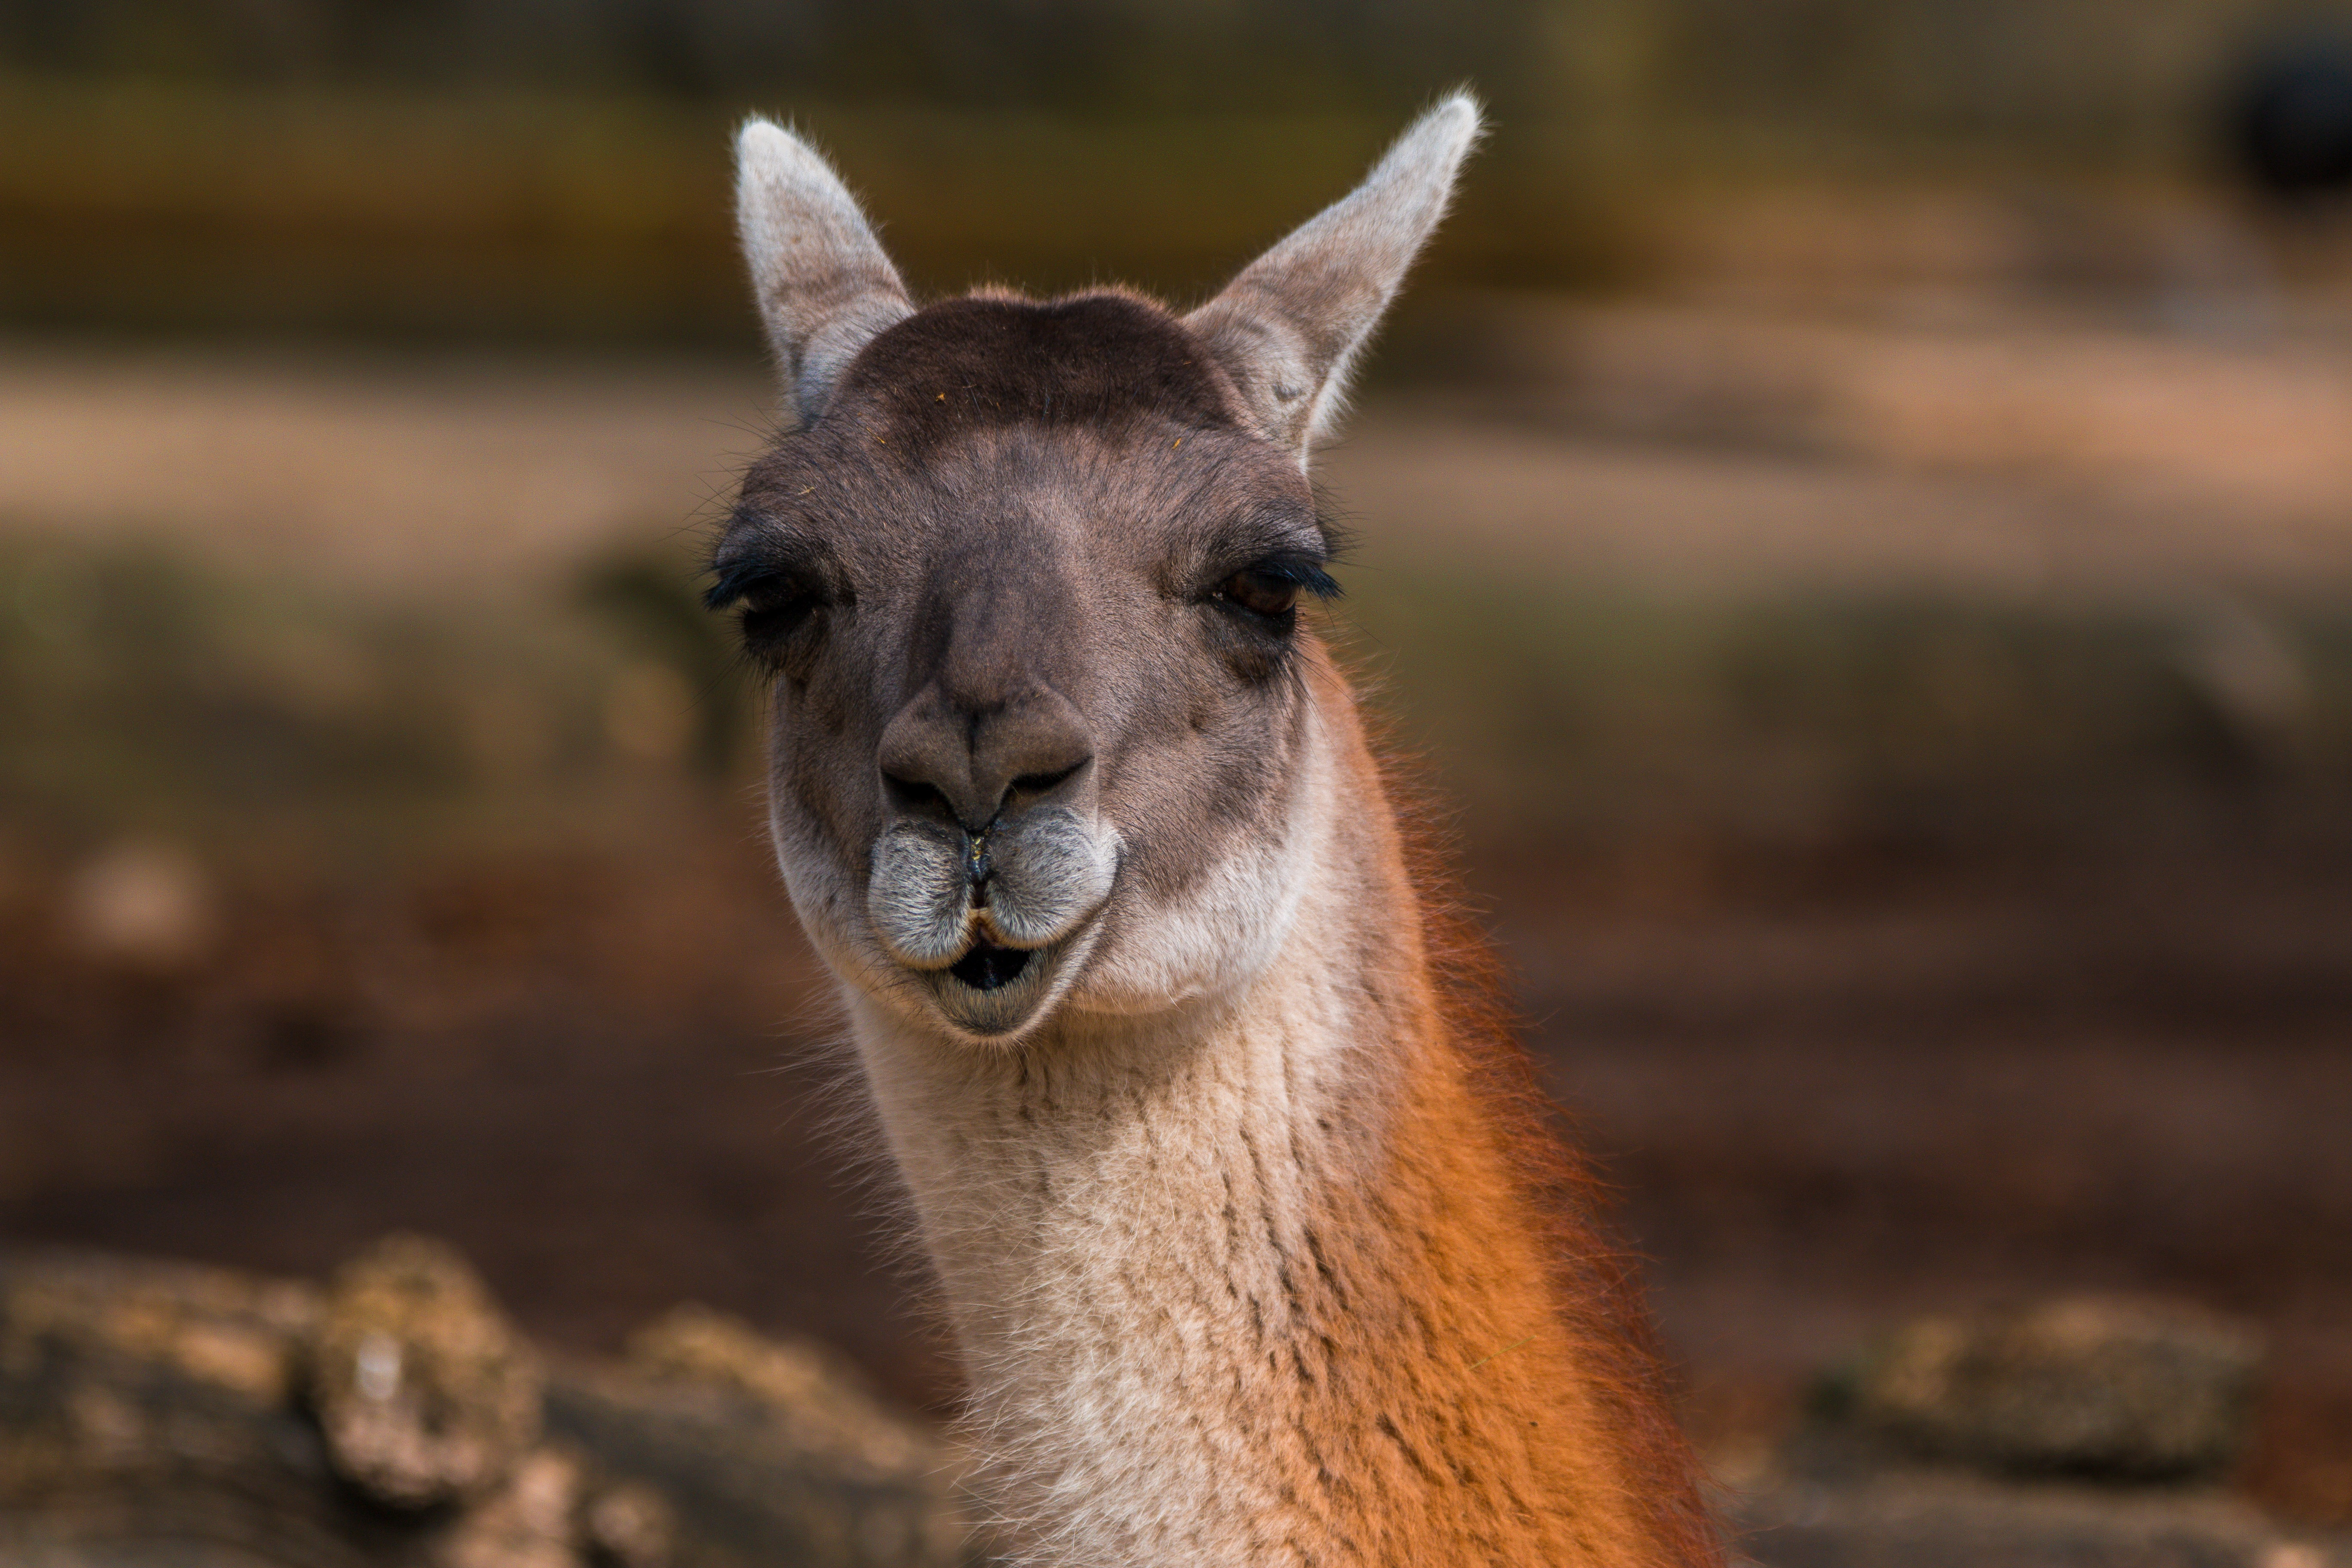 66172 download wallpaper Animals, Alpaca, Head, Muzzle, Cool screensavers and pictures for free